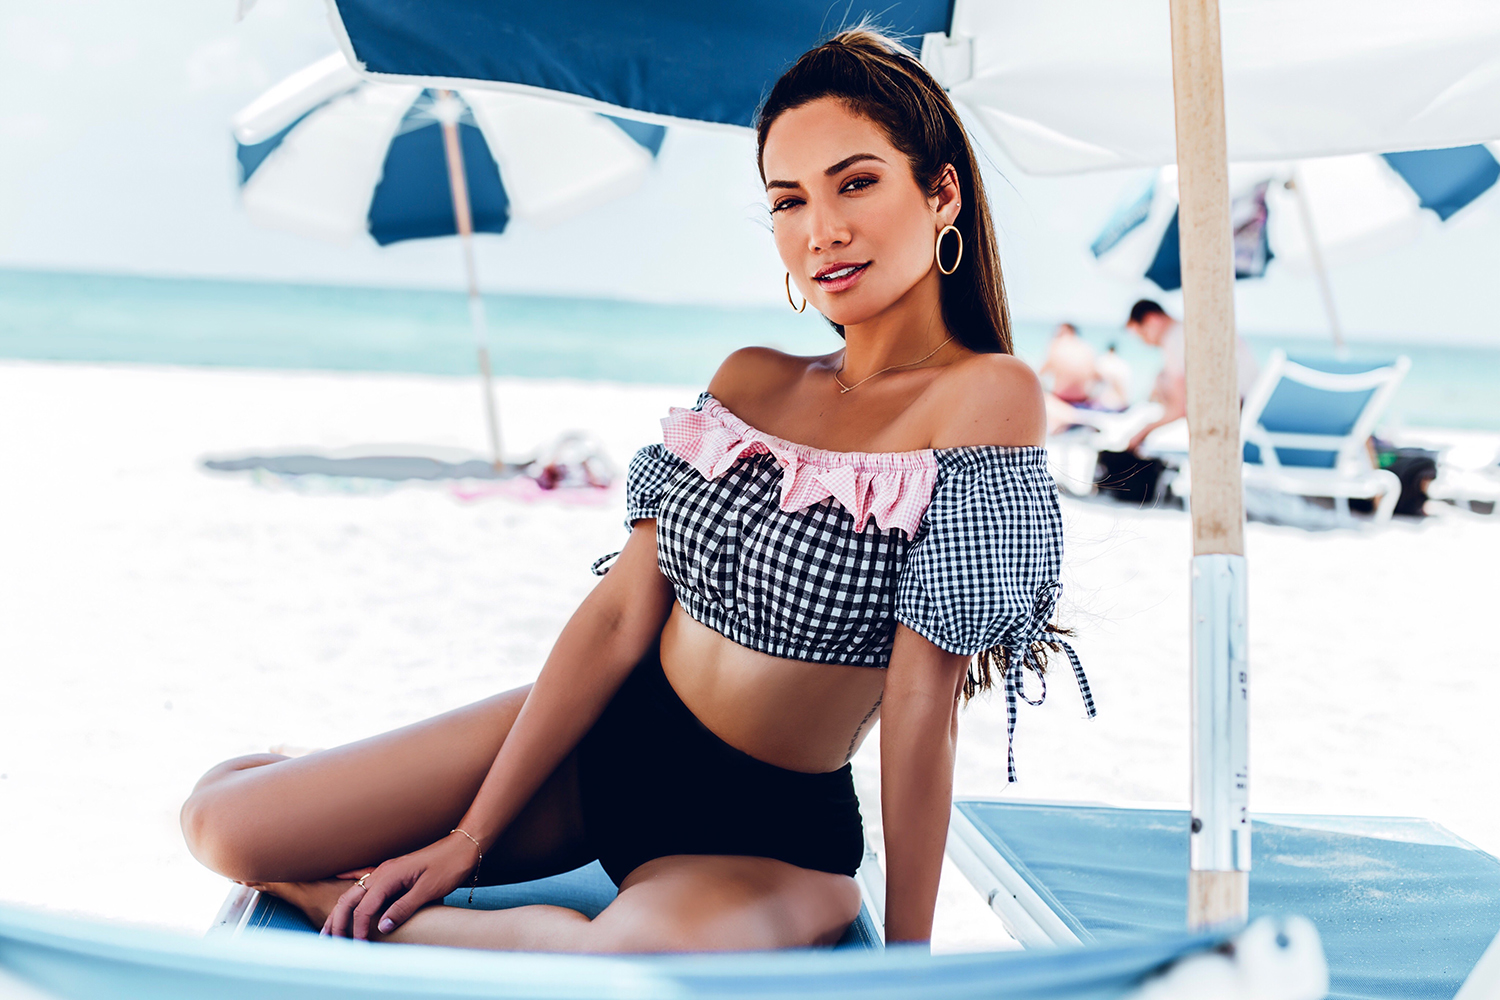 Gingham Trend Summer 2018 Style Photos